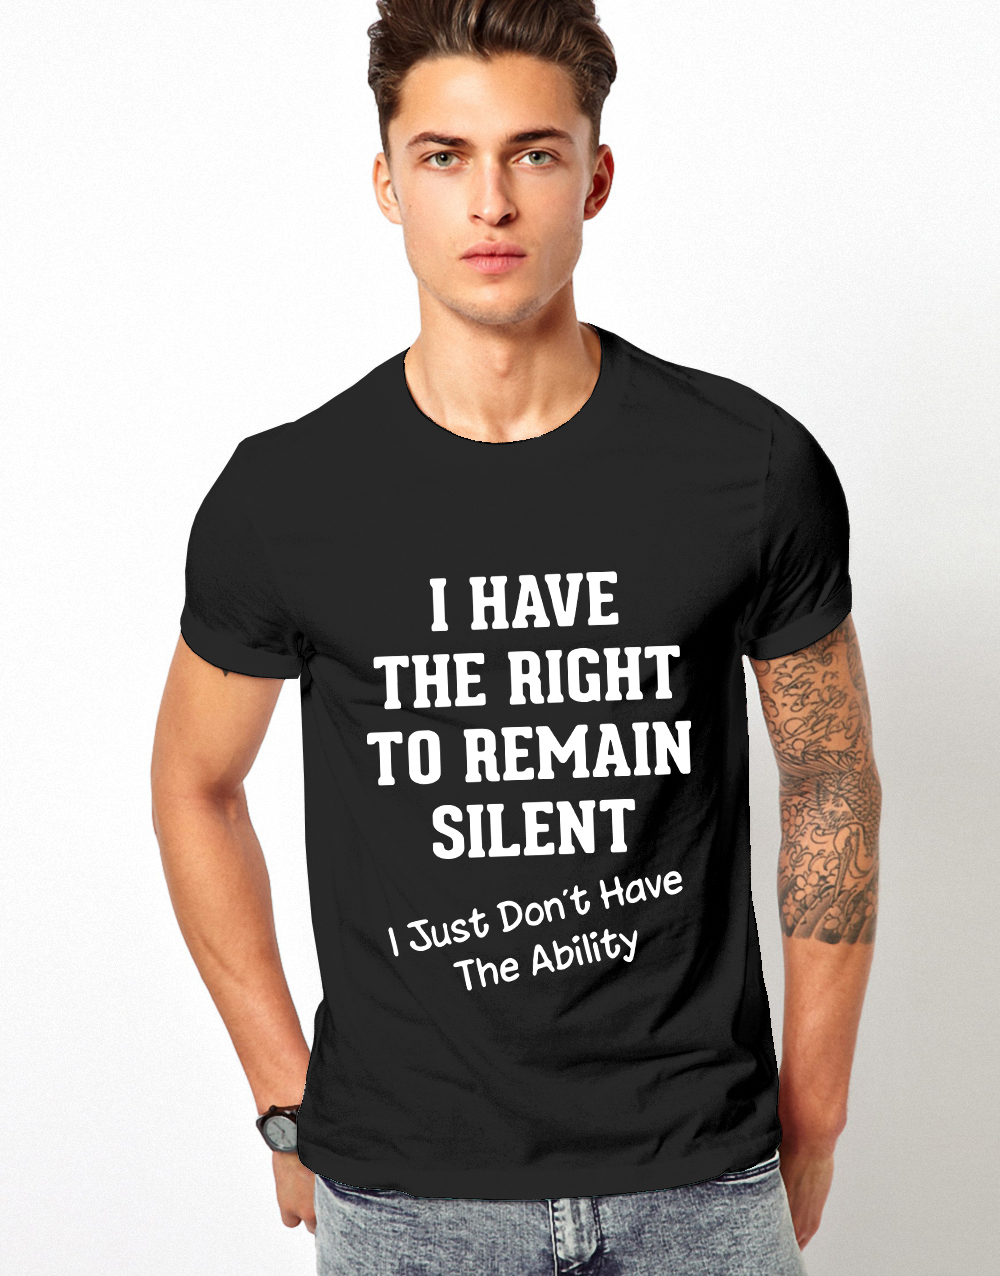 I have the right to remain silent I just didn't have the ability shirt